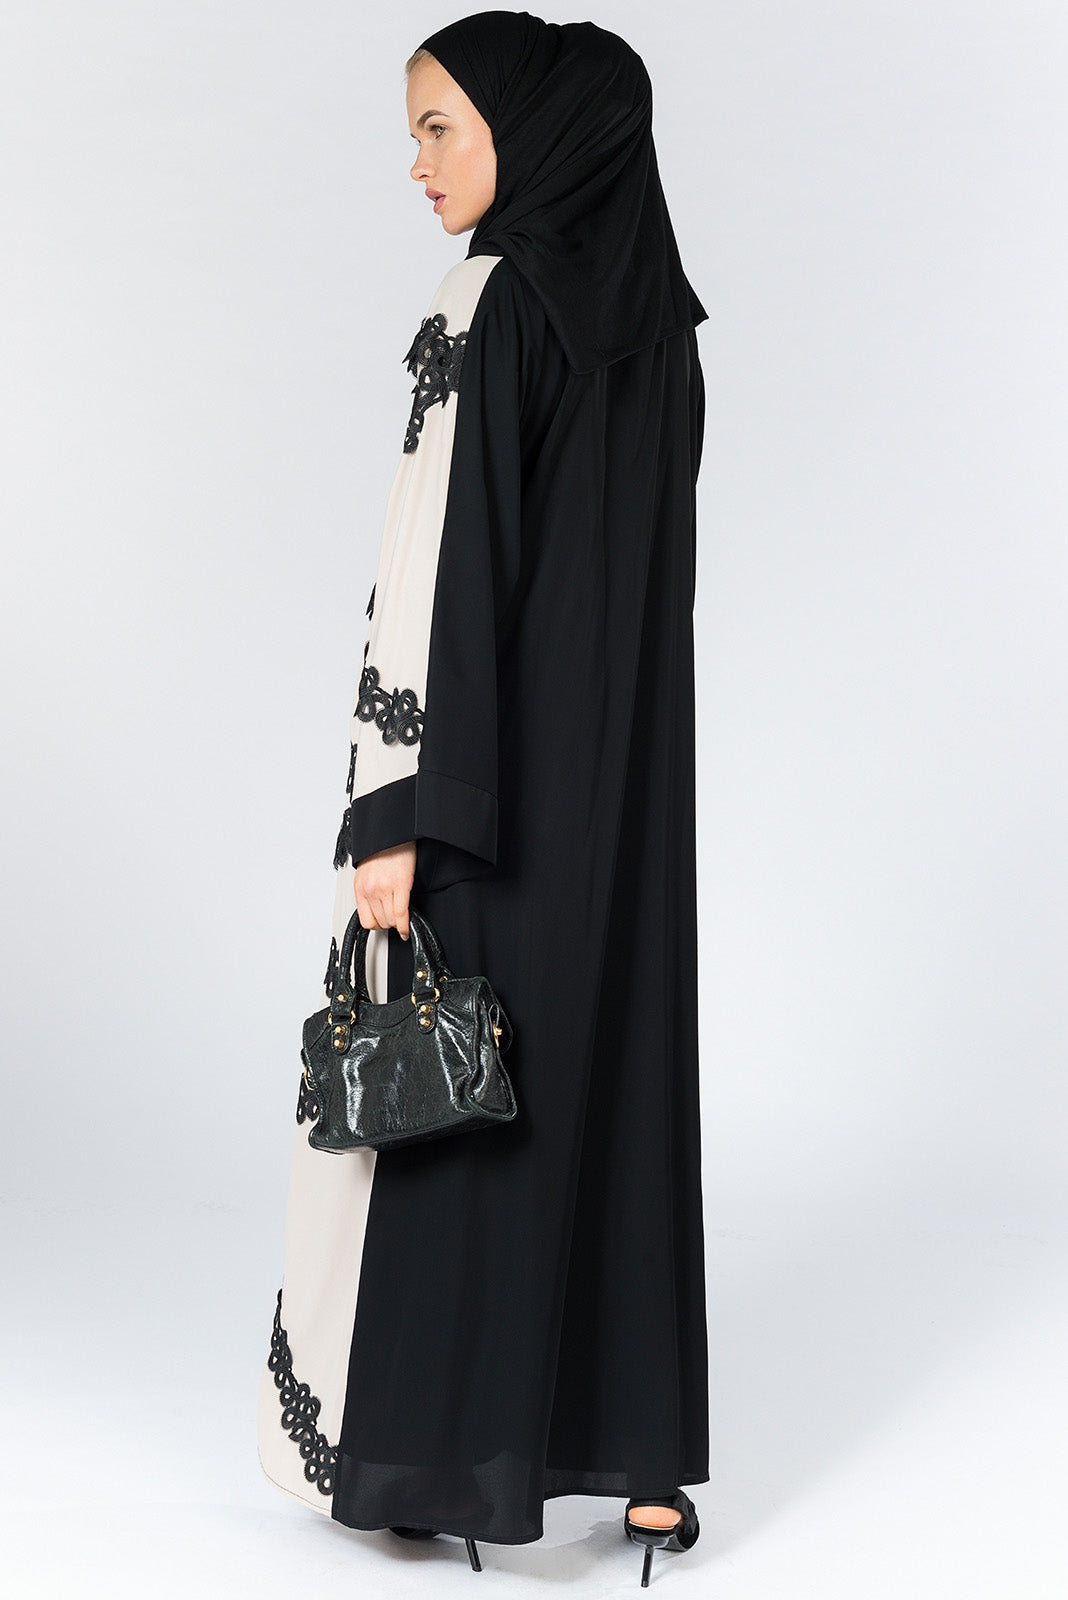 FERADJE London Bushra Abaya UK